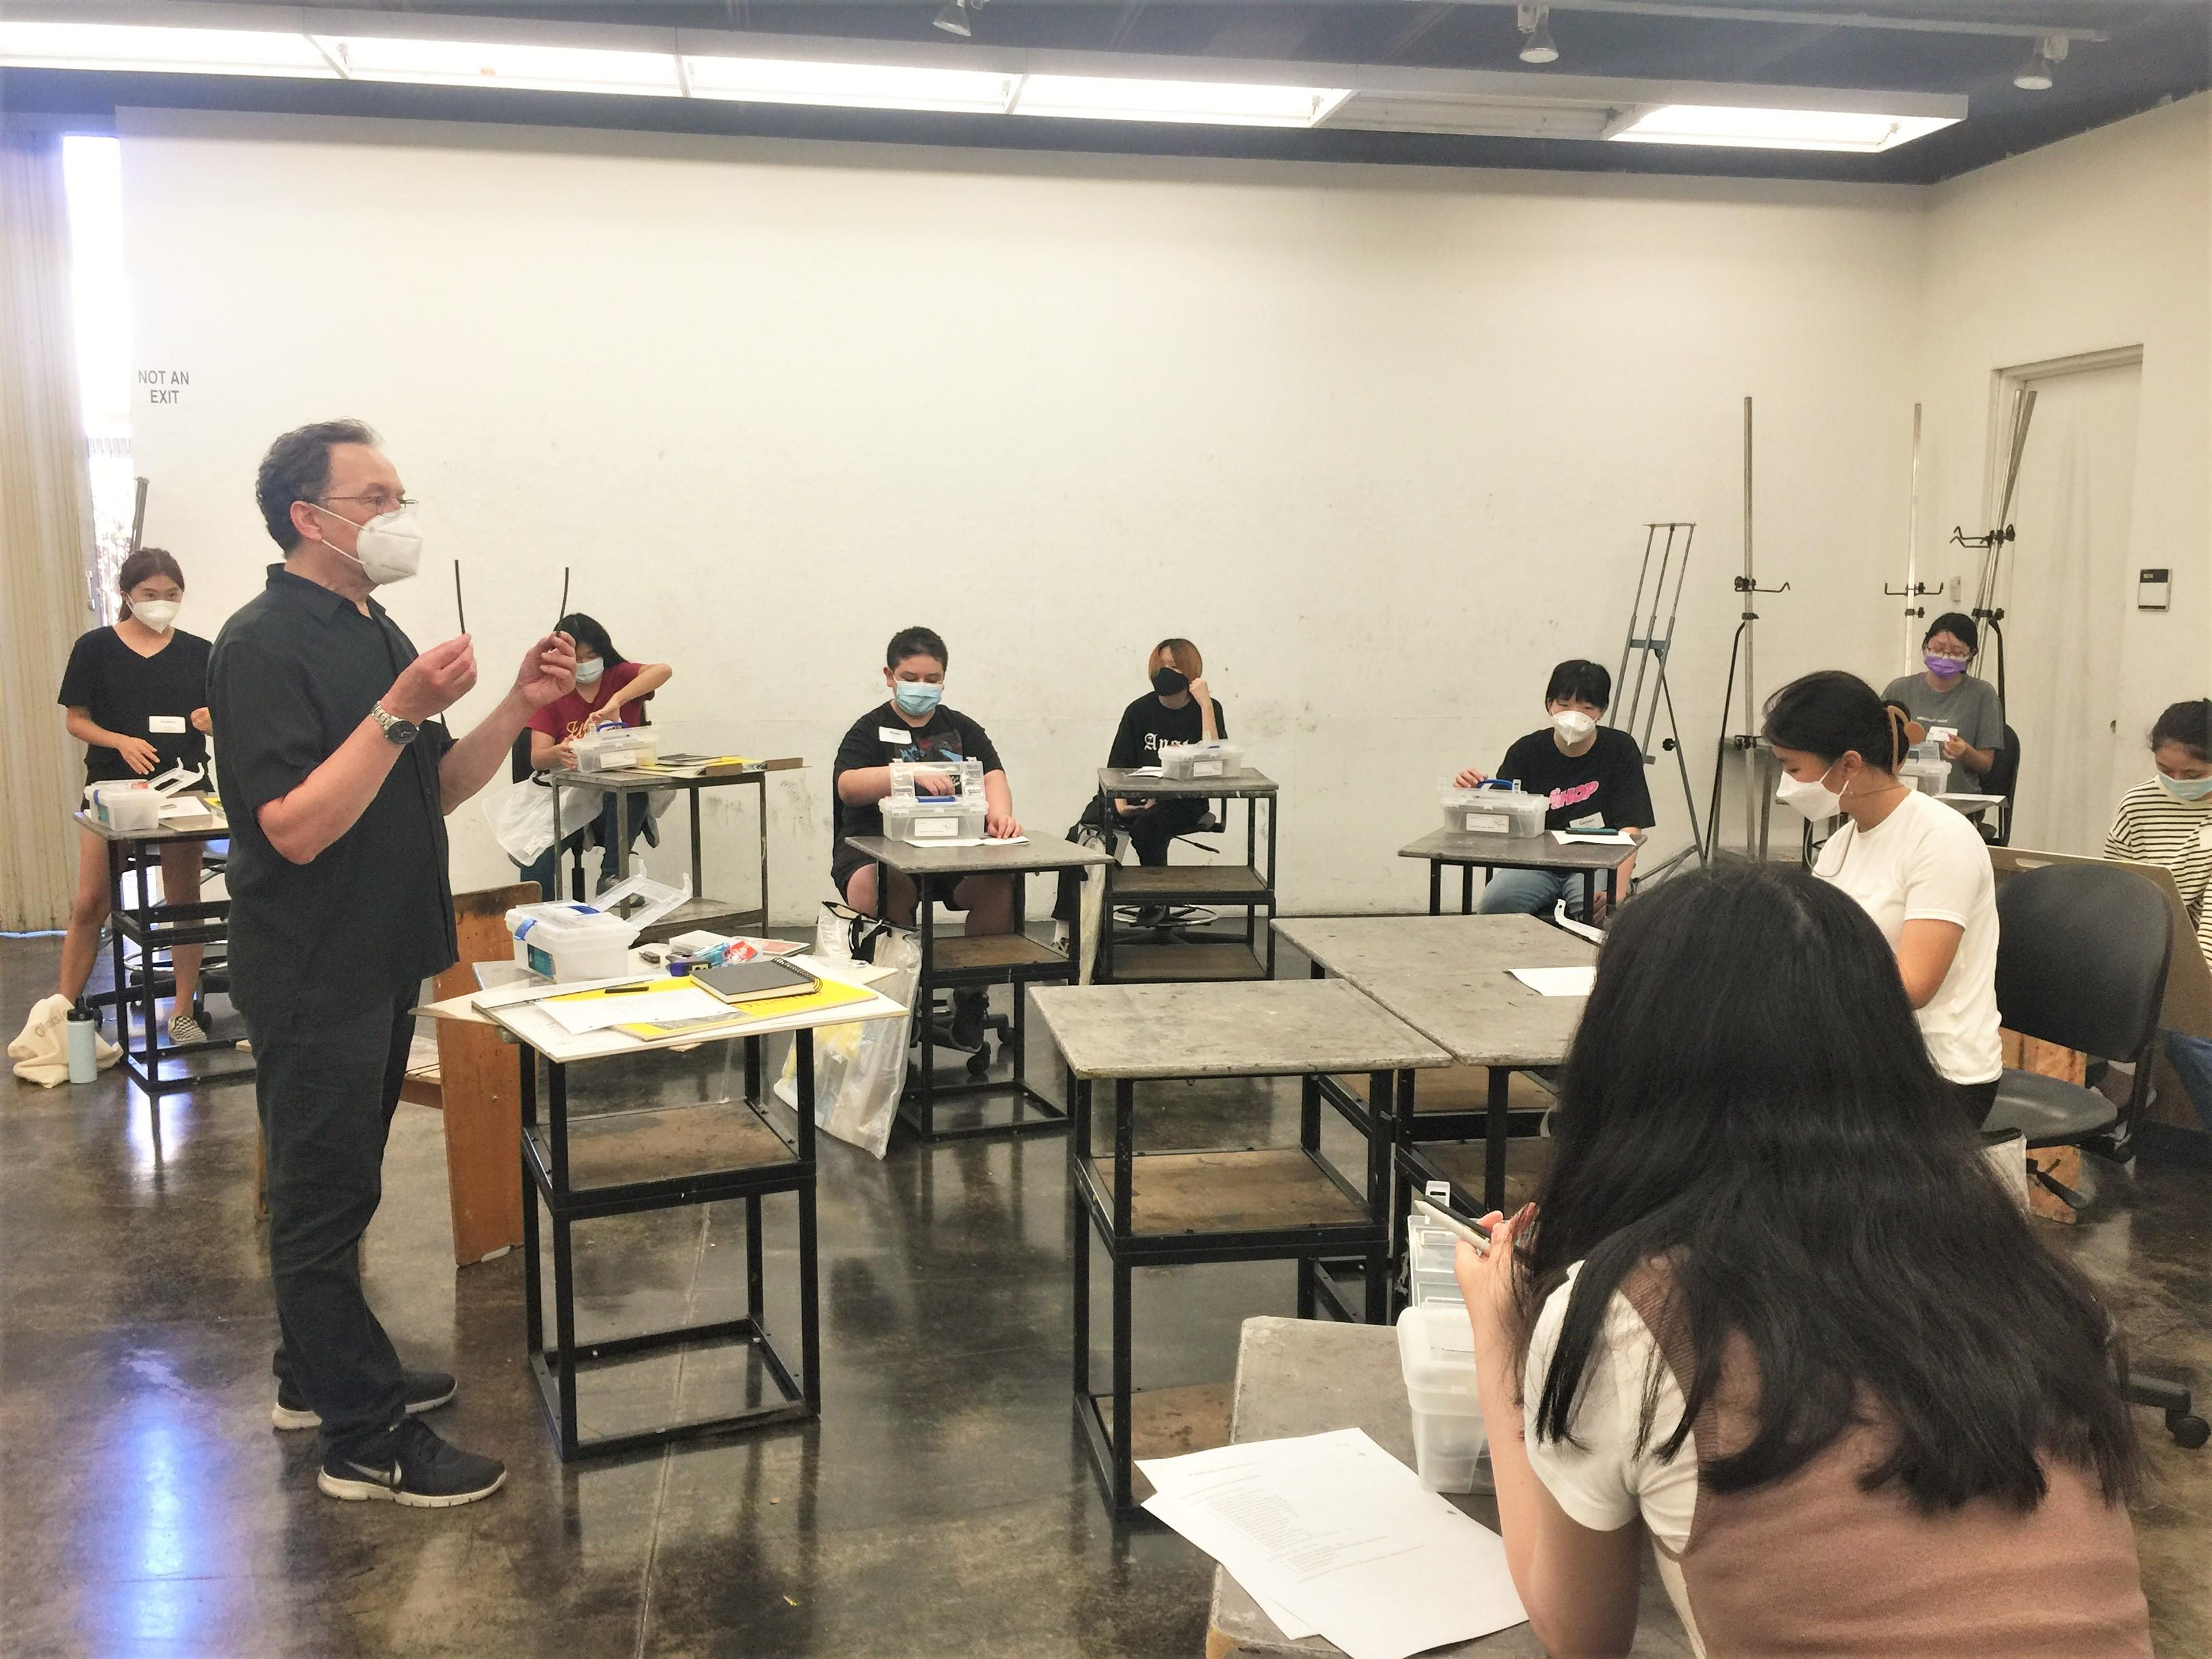 Master Teaching Artist Ira Korman reviewing art supplies to students on the first day of Ryman Arts class